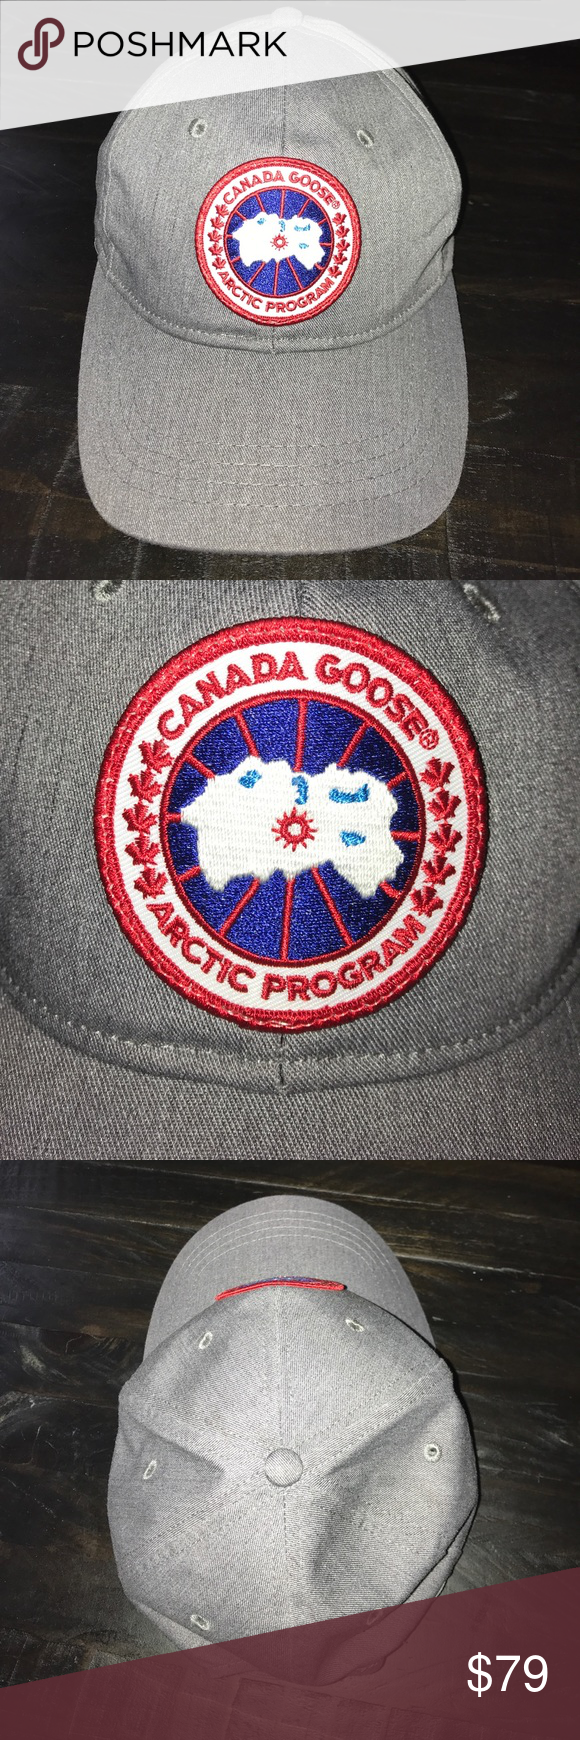 29d15c083d5 AUTHENTIC CANADA GOOSE HAT AMAZING quality CANADA GOOSE hat!! You will love  it!